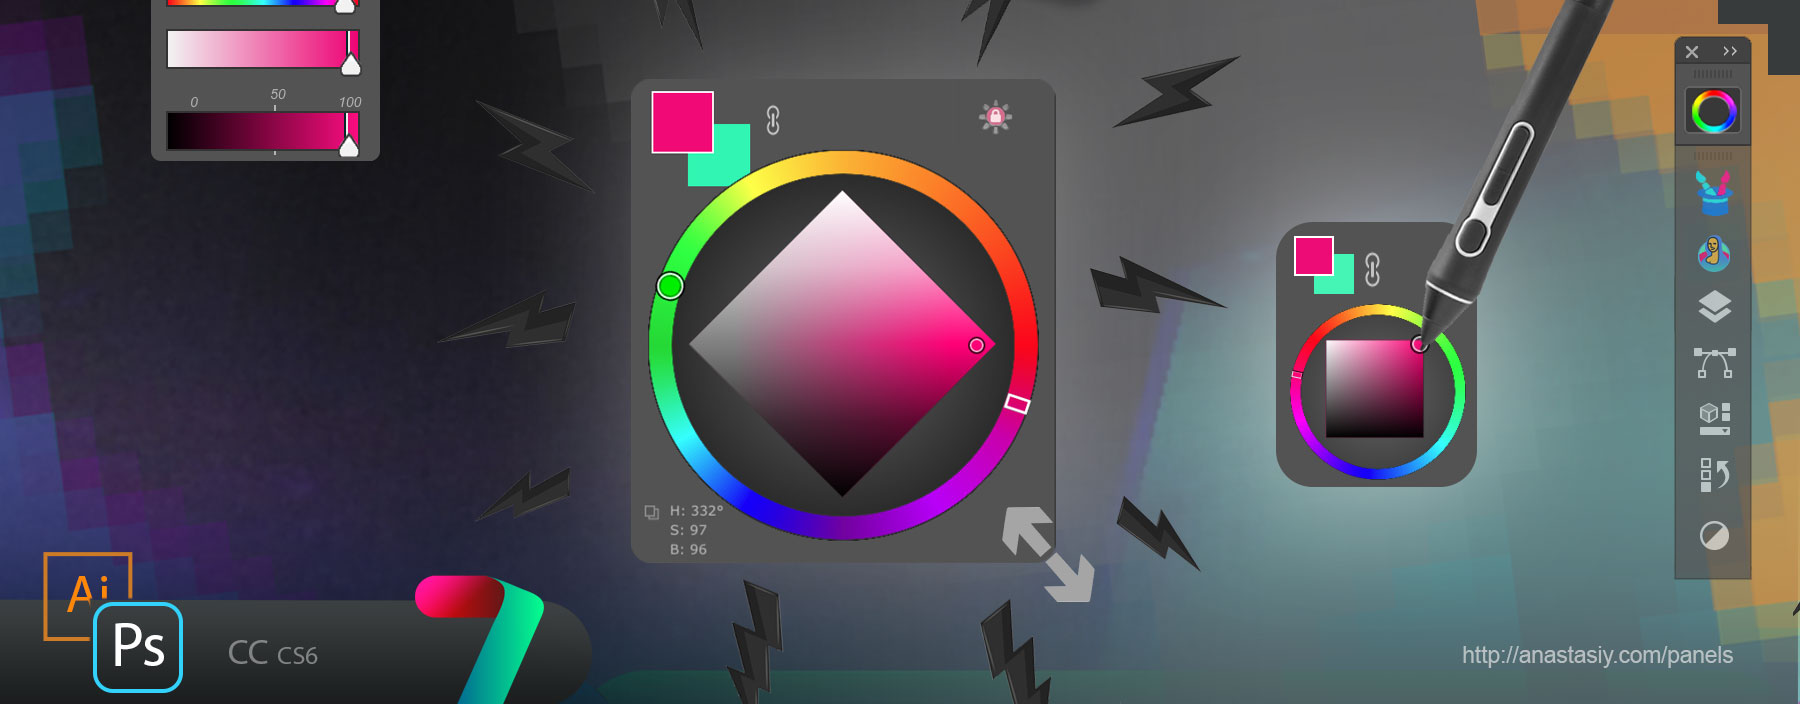 Scale MagicPicker Color Wheel HUD in Photoshop